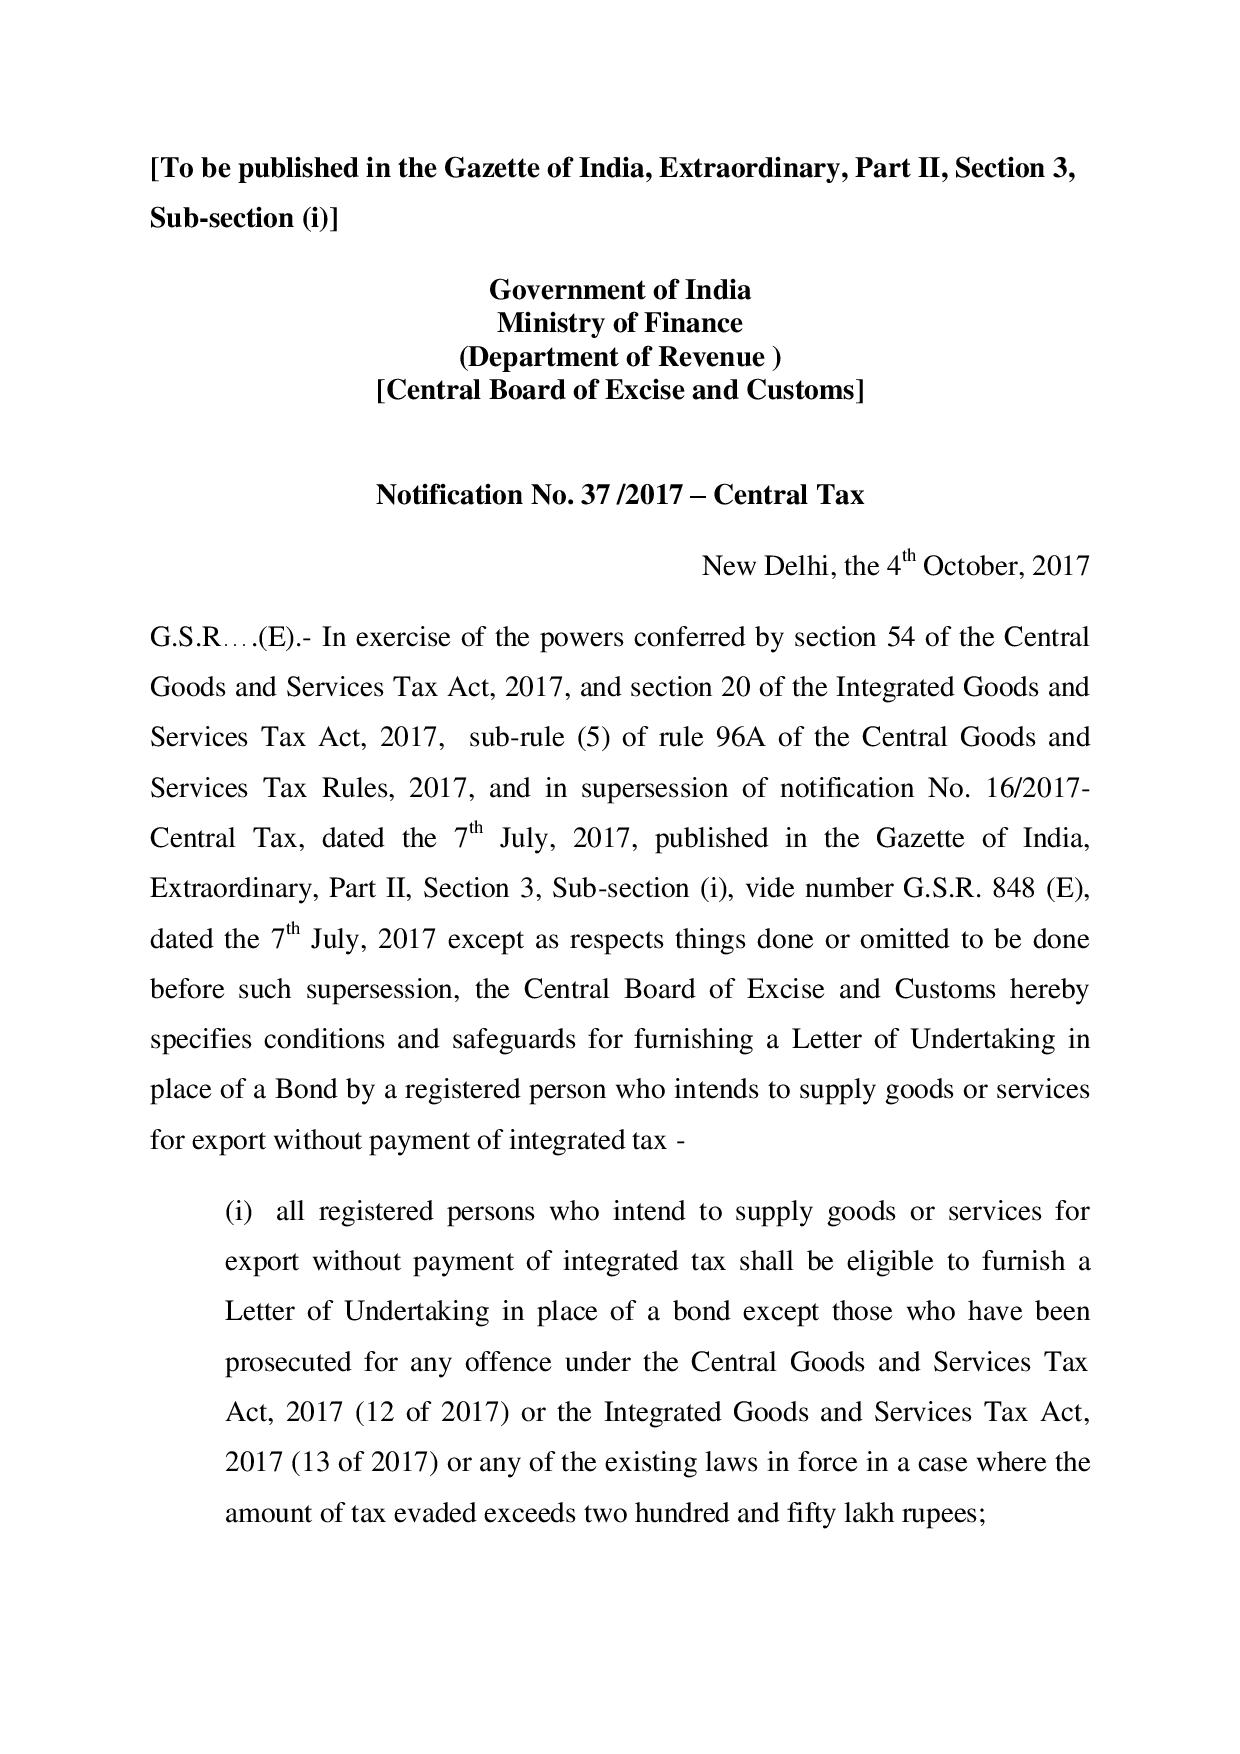 Revised Requirements For Letter Of Undertaking Lut Under Gst For